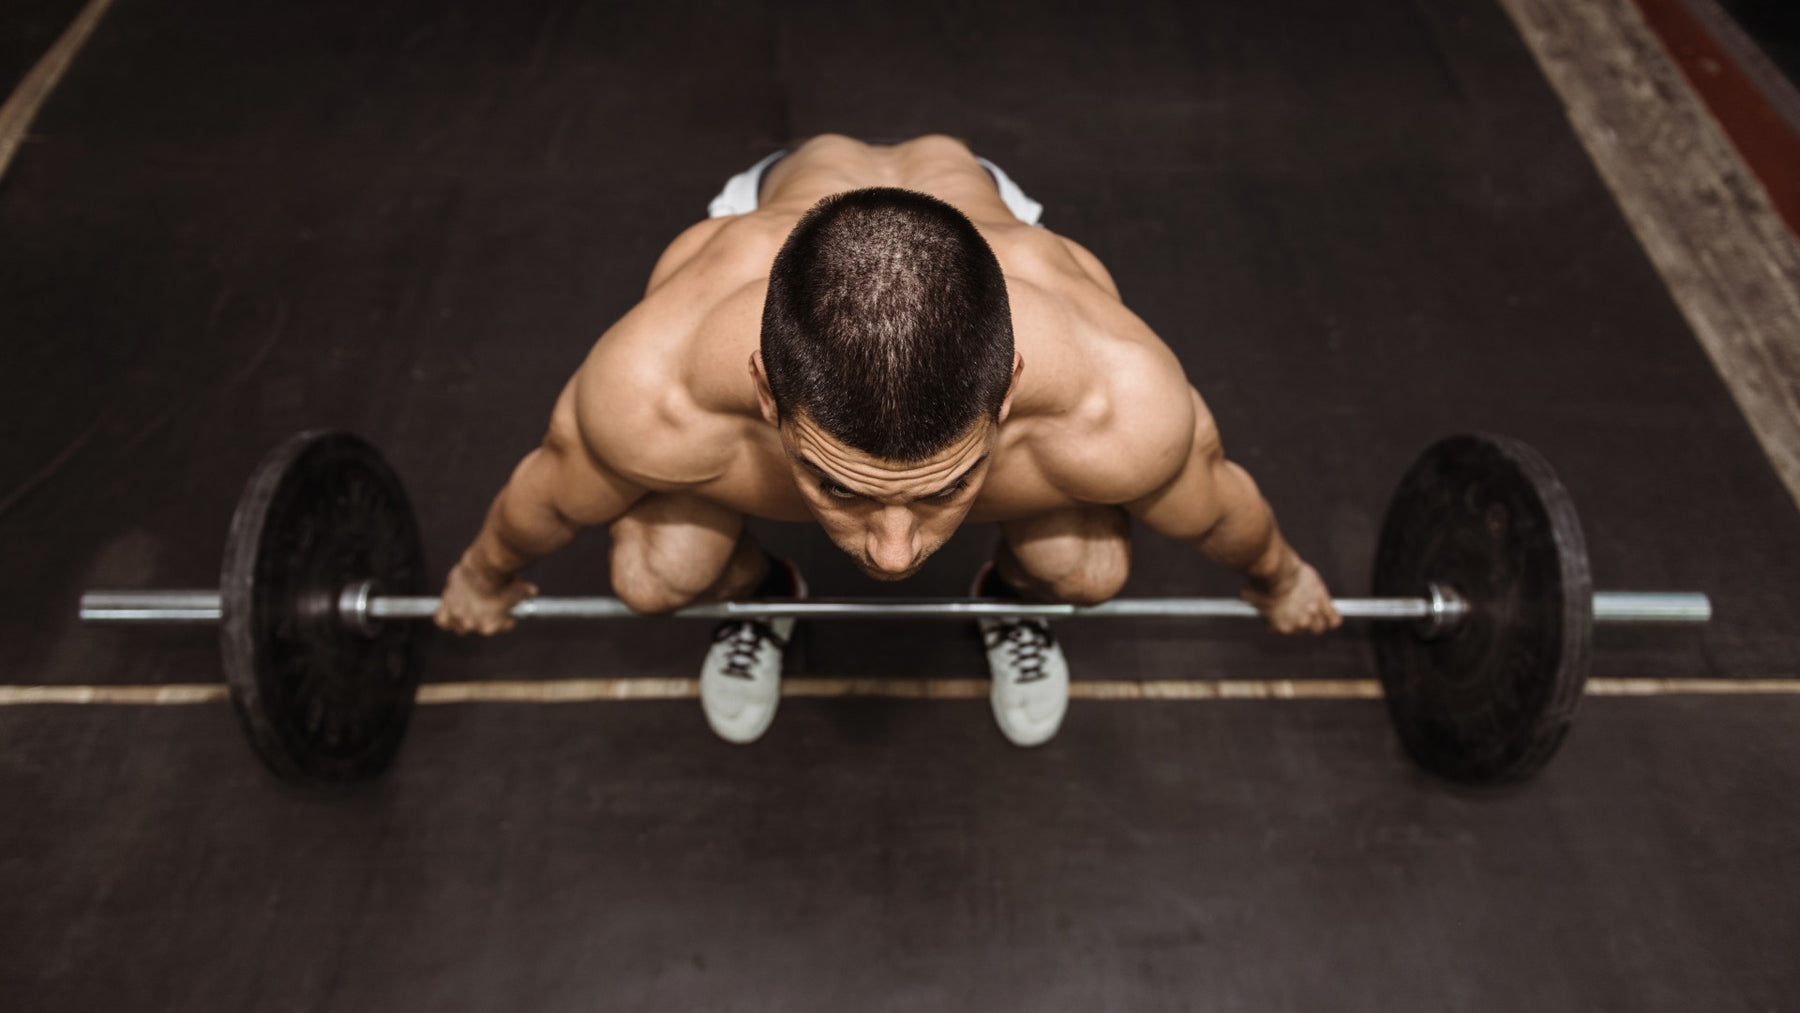 How to gain weight and muscle mass 63